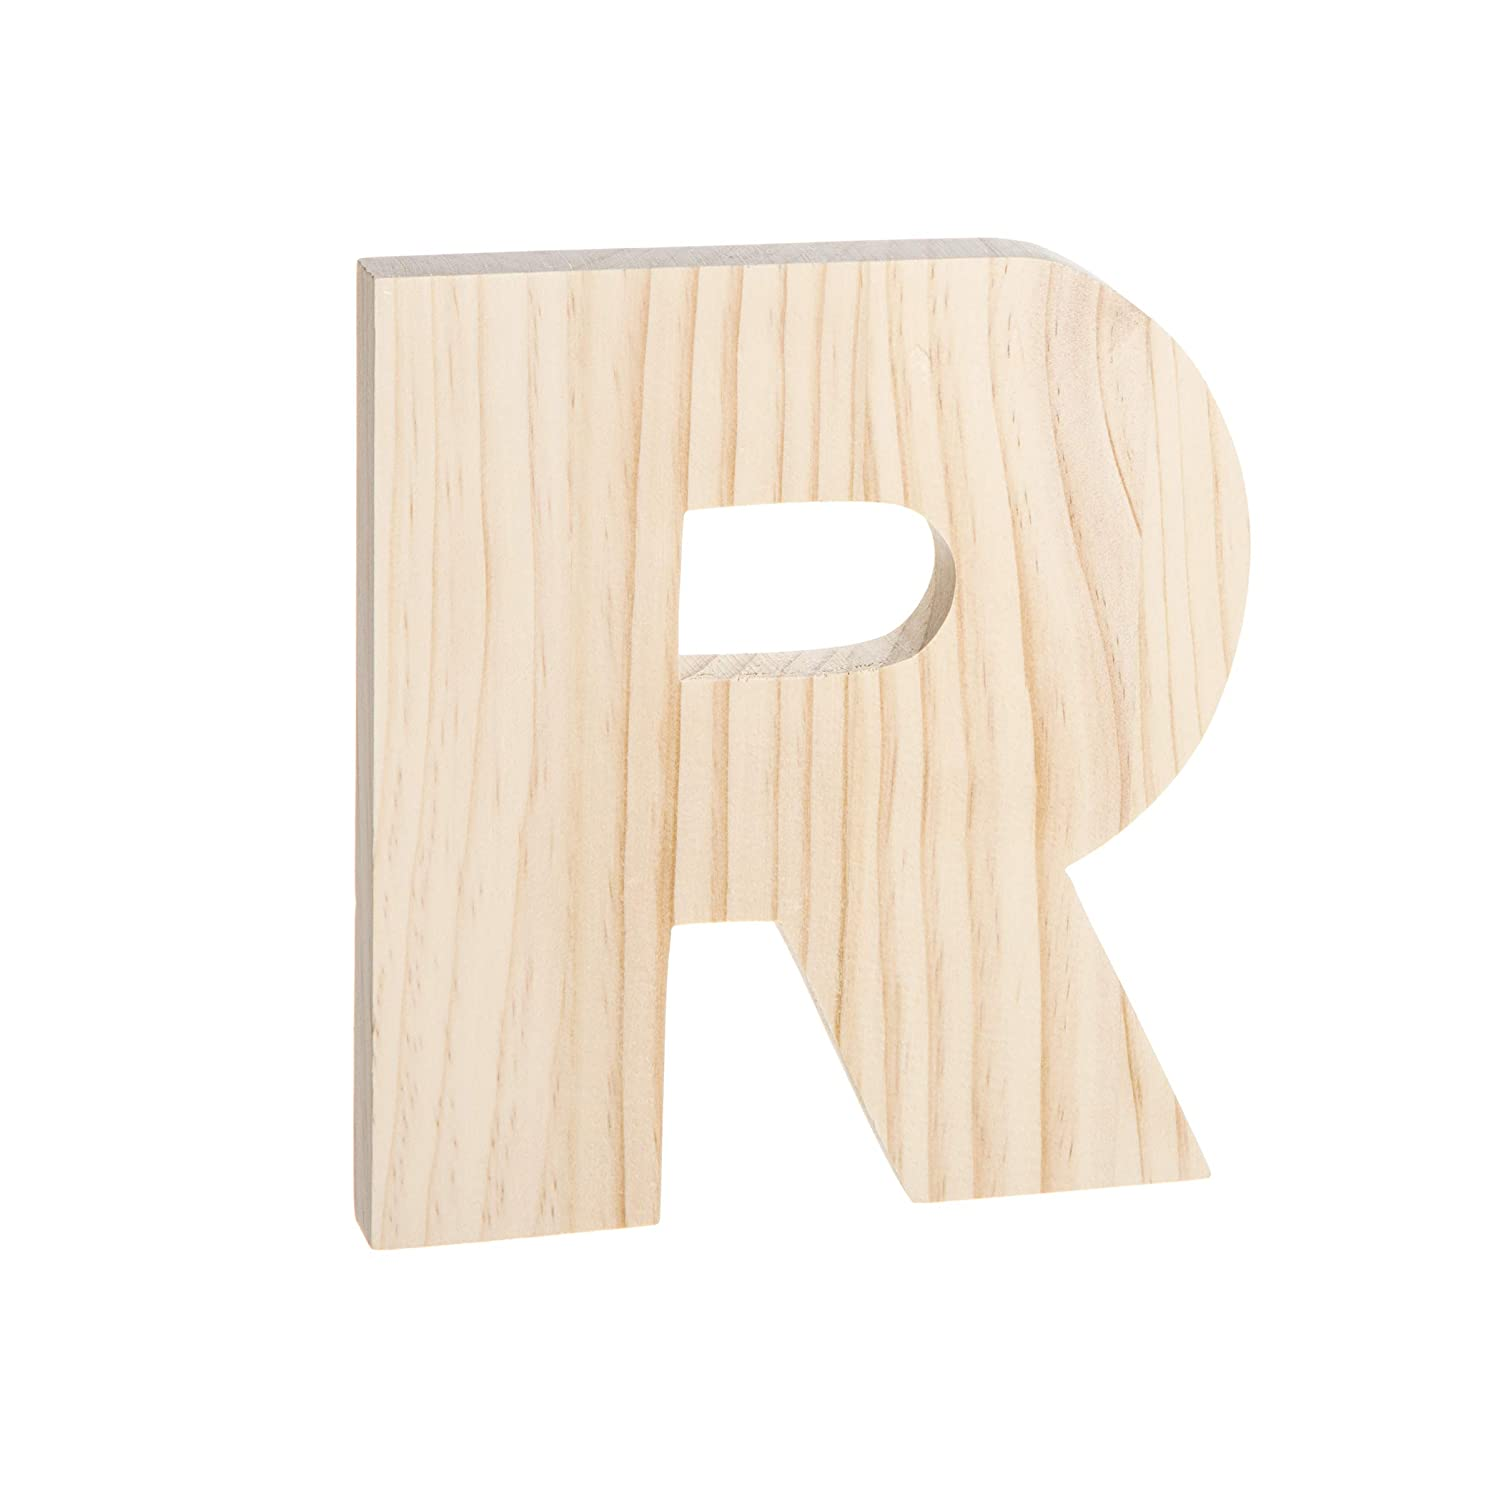 Darice 30066918 Unfinished Wood Letter: R, 8 x 8 inches, Natural